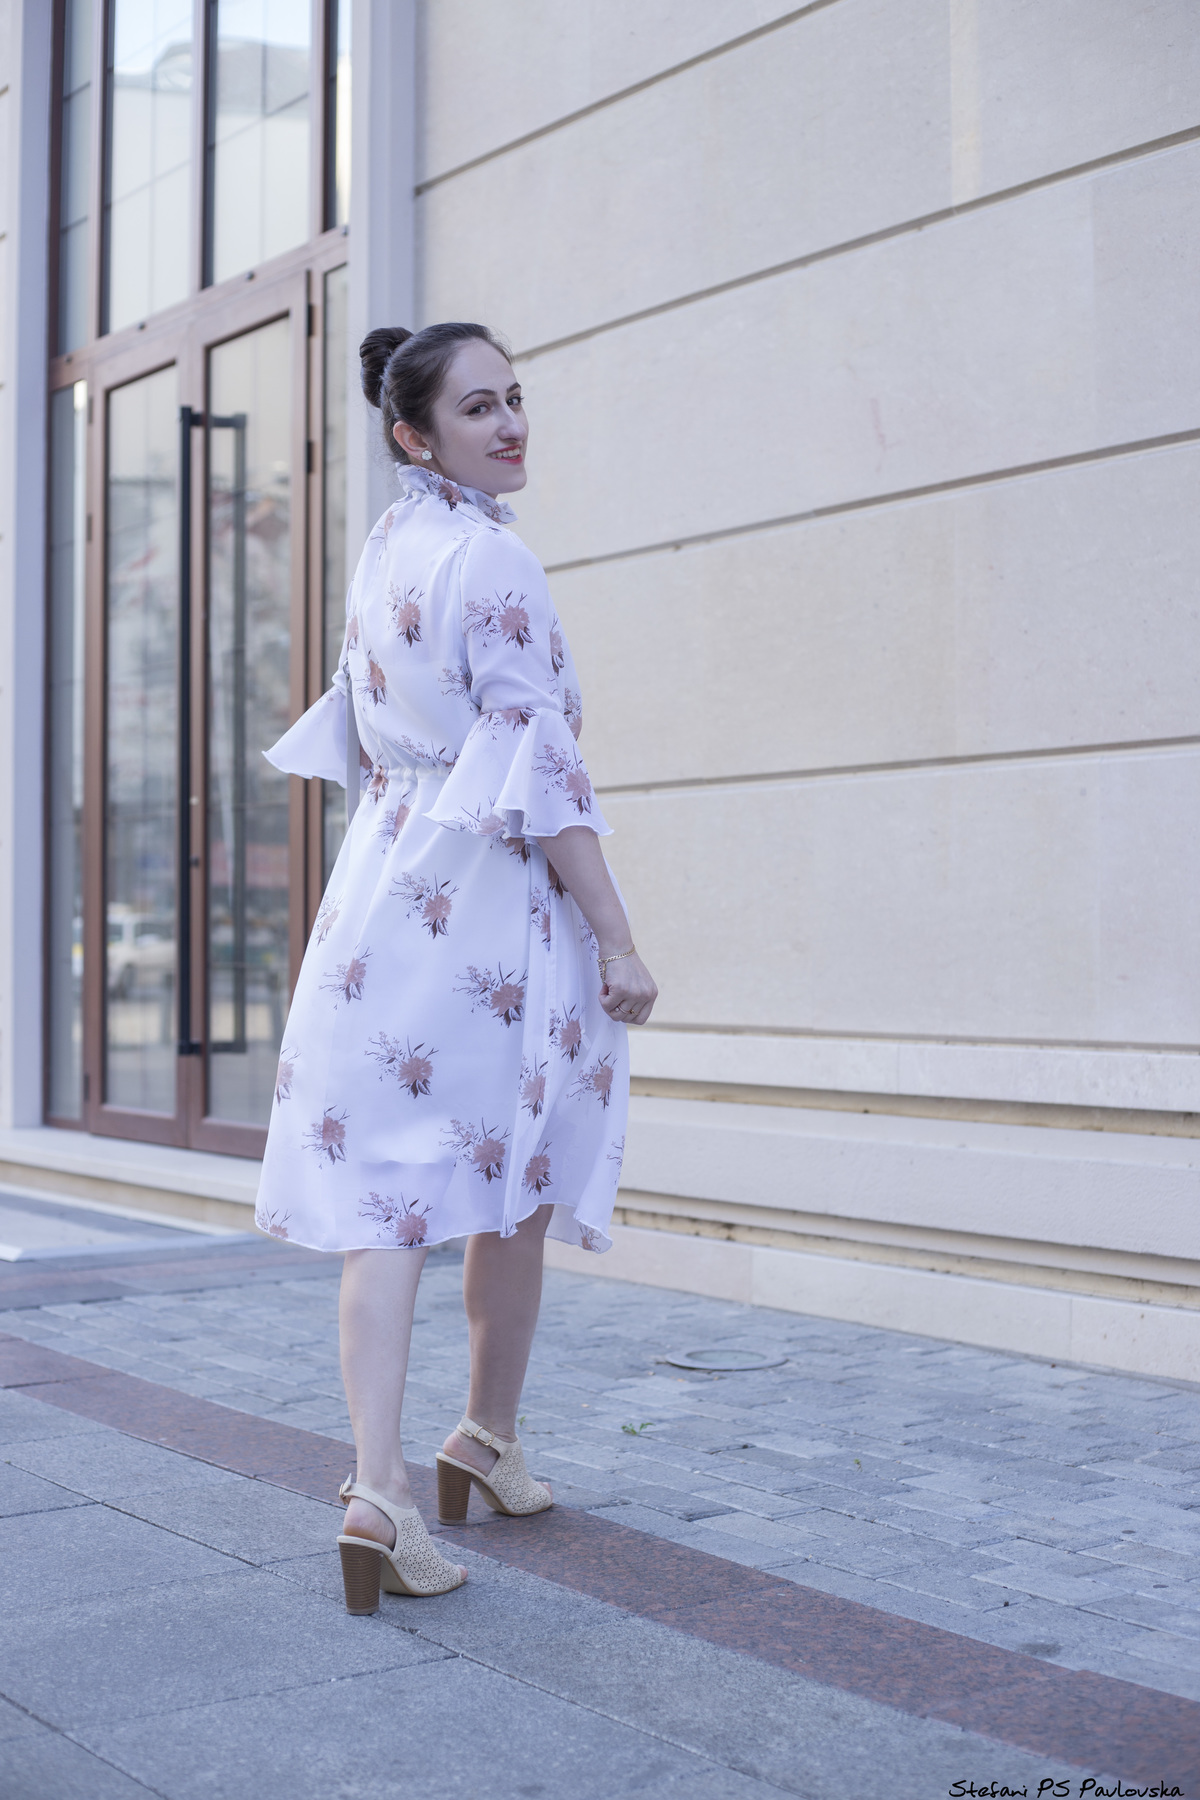 My idea was to make a very ethereal dress with a feminine touch that would give off a very pure and delicate vibe. So I designed this white floral dress. Read the story on www.dilekaspires.com